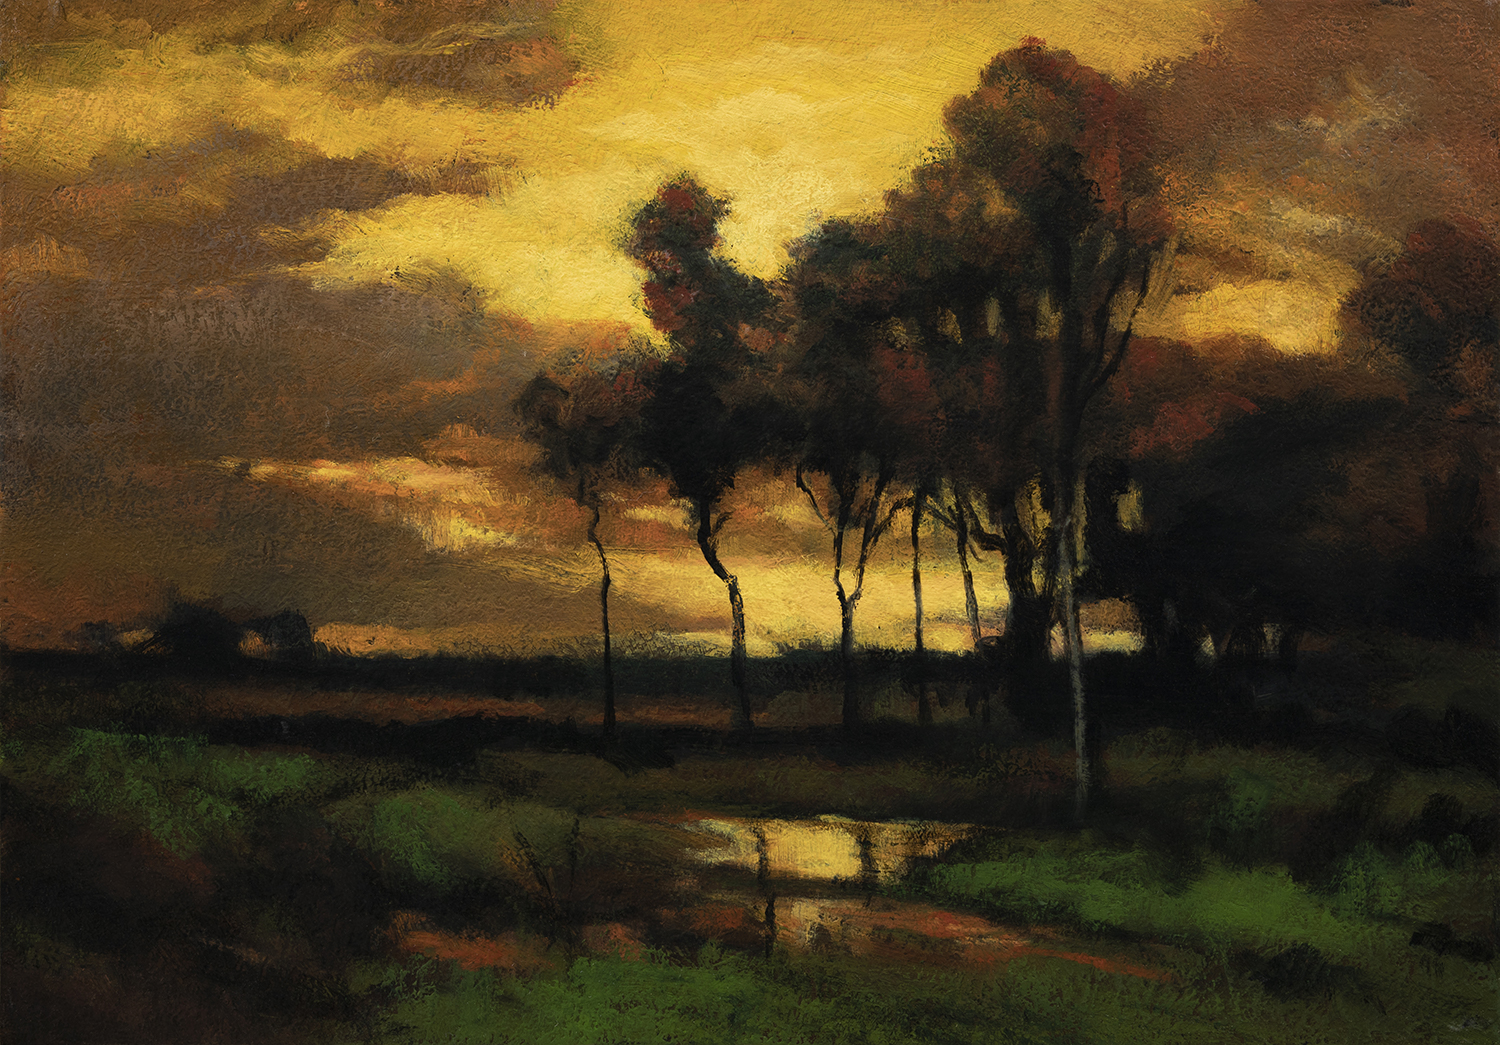 Study after:John Francis Murphy Sunset Landscape by M Francis McCarthy -7x10 Oil on Wood Panel